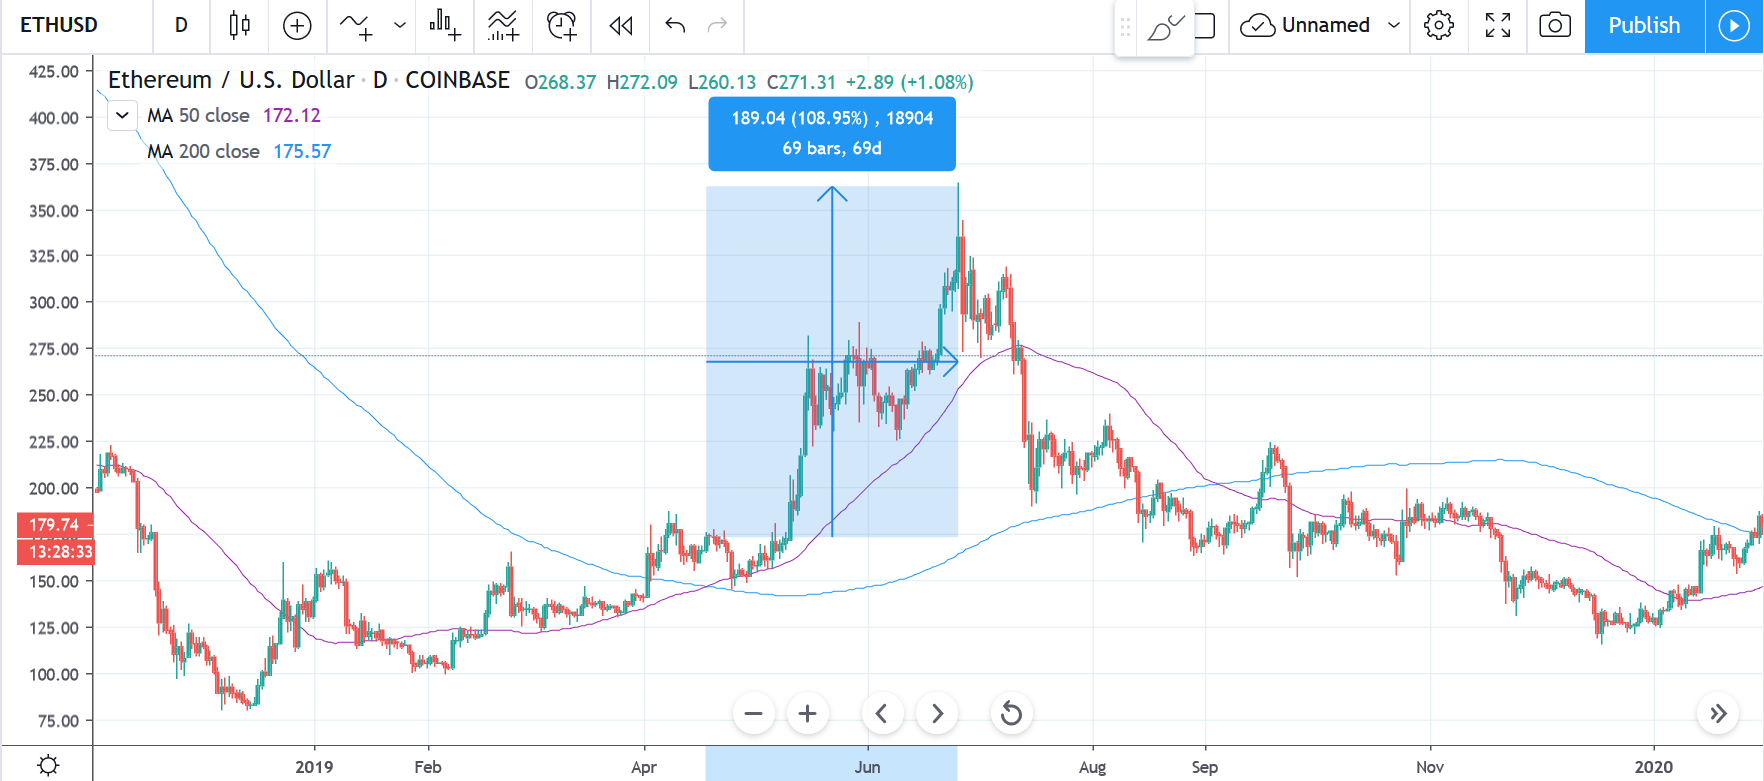 Ethereum daily chart with 50-day and 200-day MA